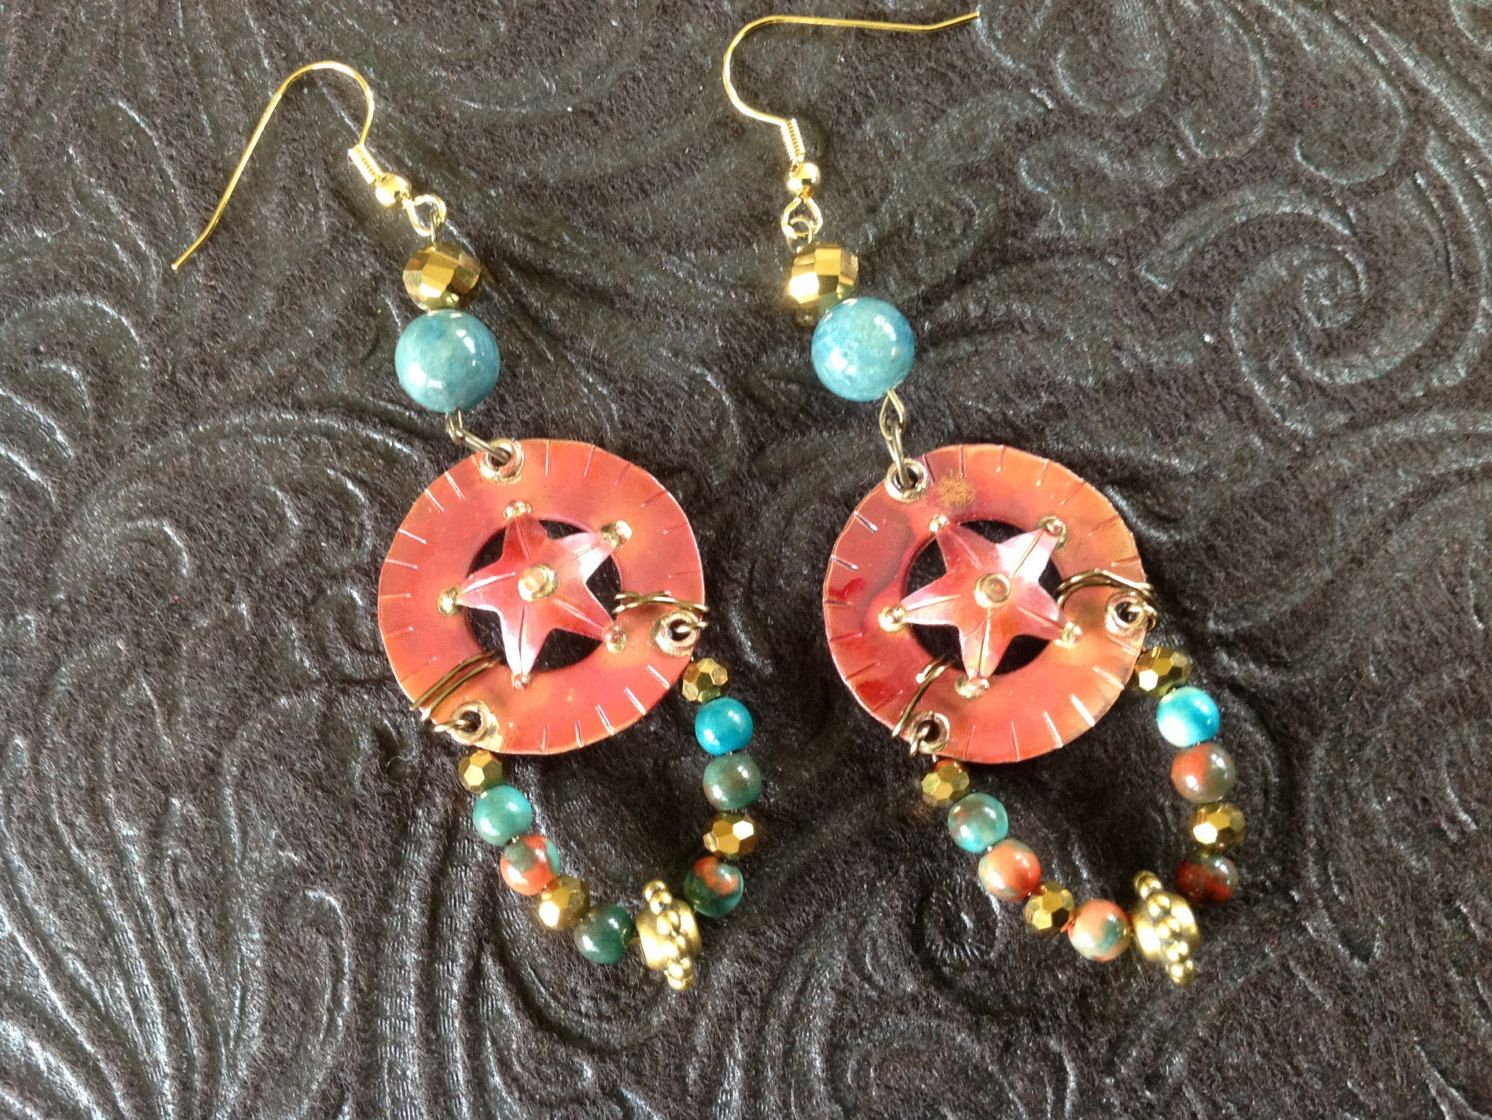 Shooting star earrings in red copper with turquoise coral bead mix and gold accents by CrowsFeetStudio on Etsy